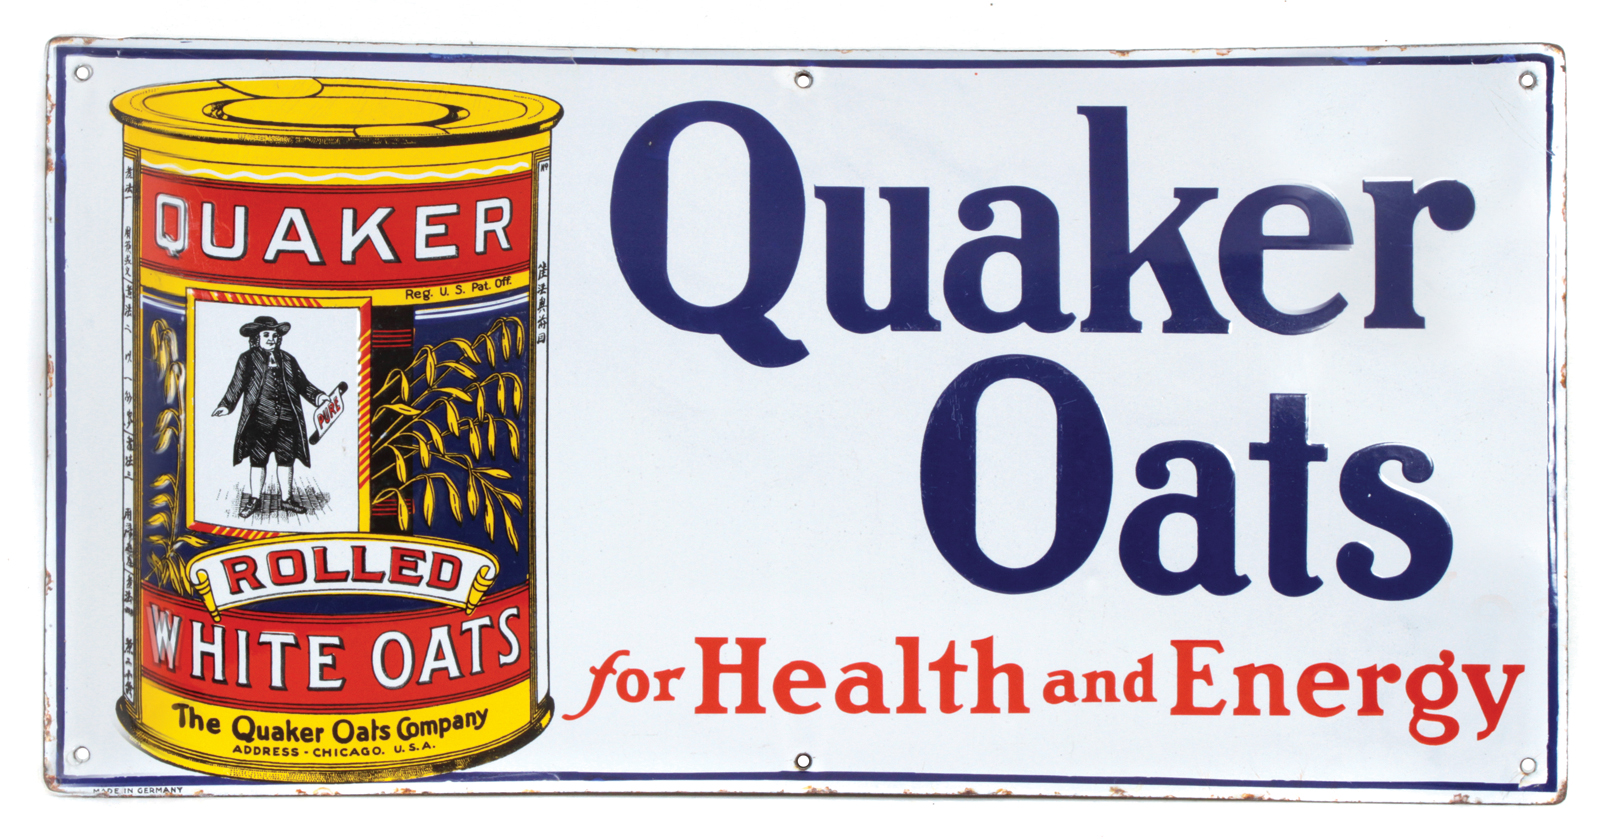 Quaker Oats Porcelain Sign